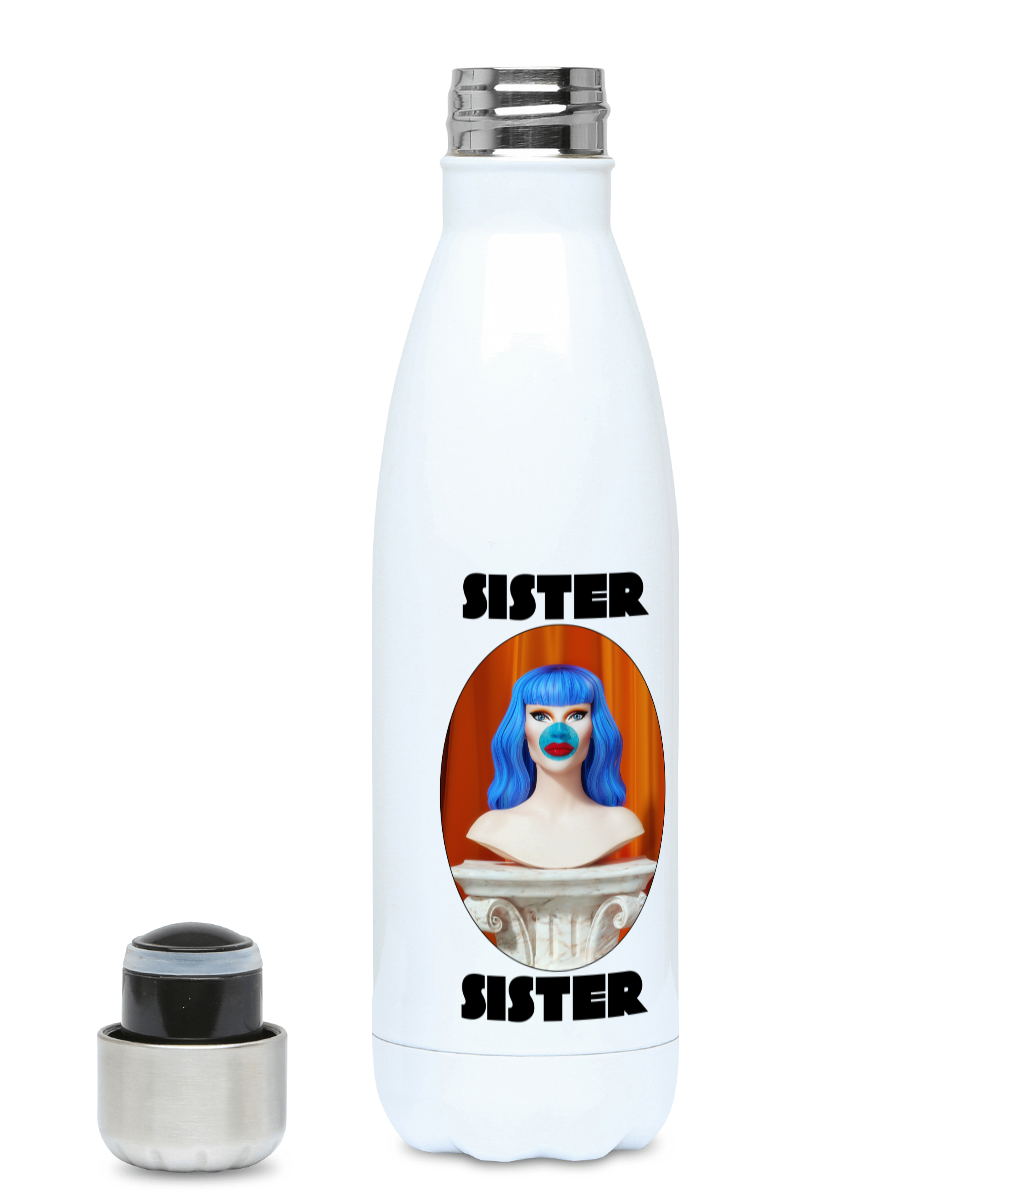 Sister Sister - Bust Water Bottle